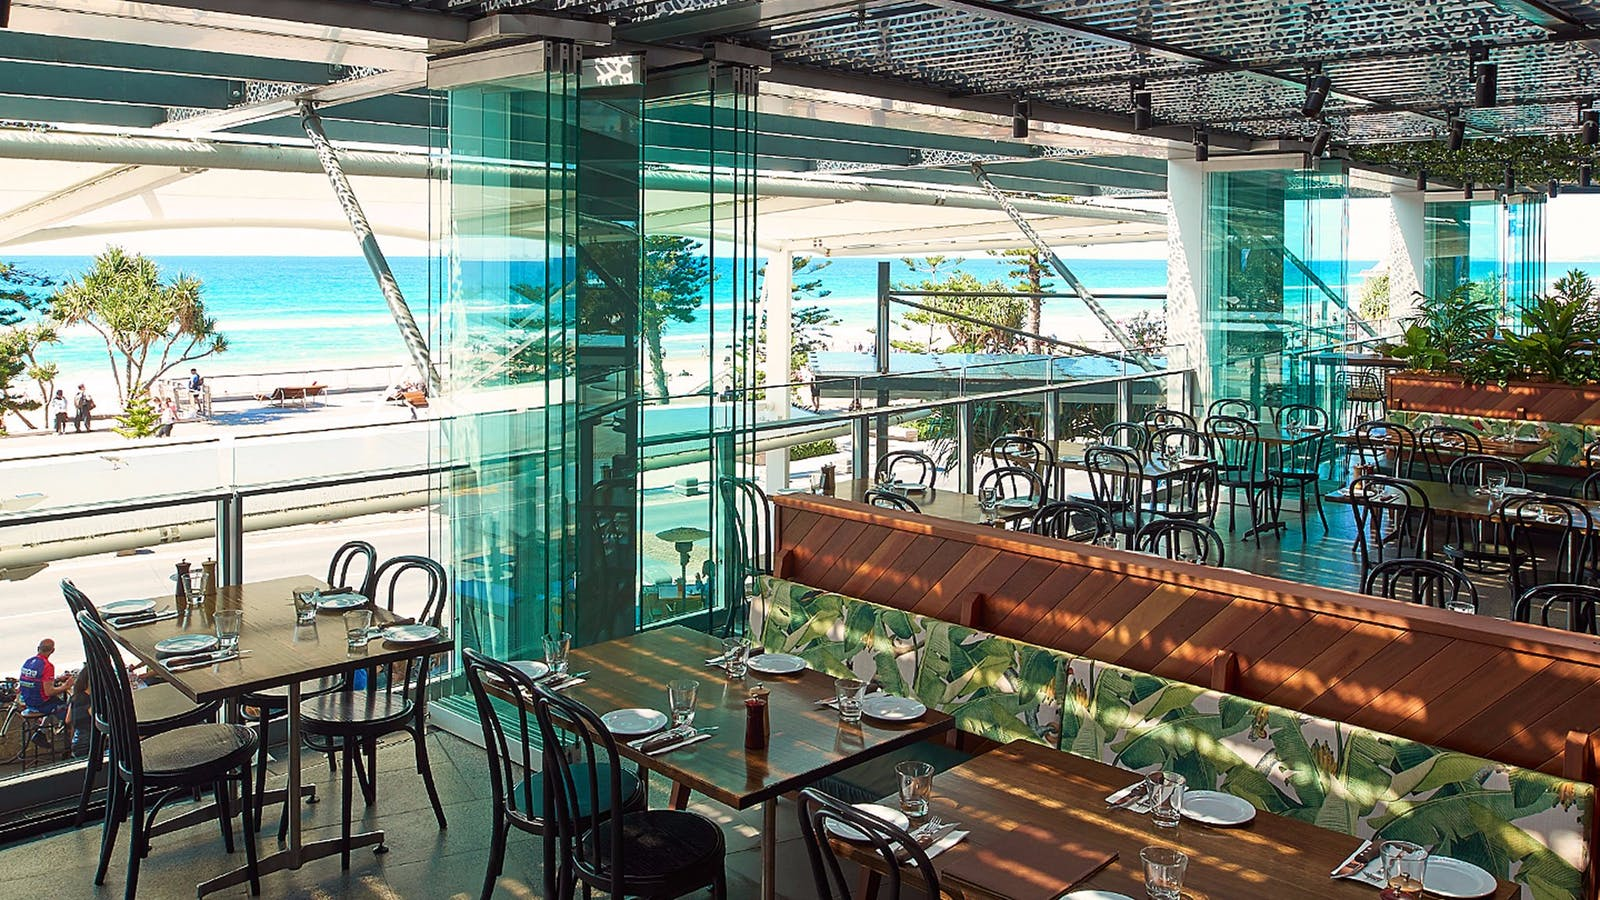 Hurricanes Grill Surfers Paradise Restaurant and view